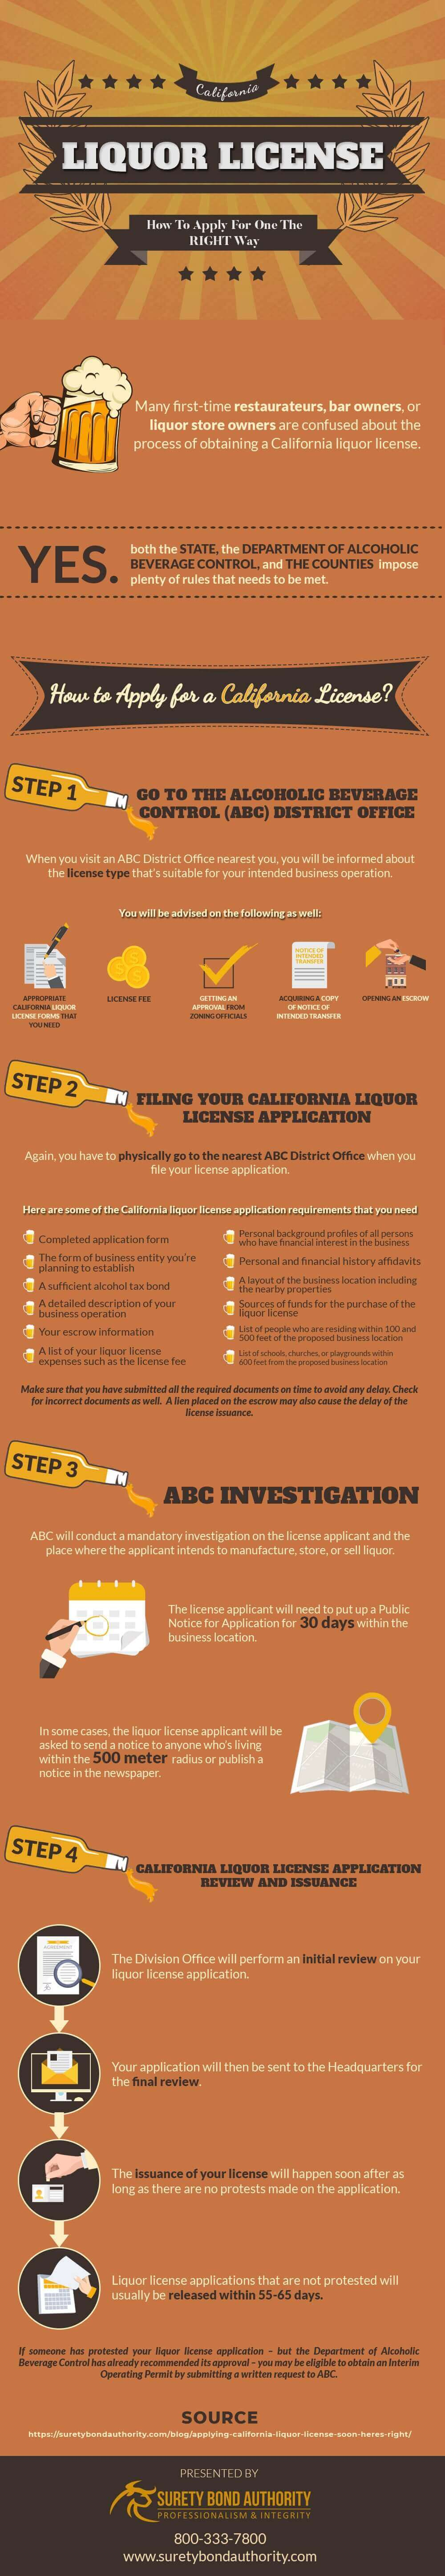 Applying for Liquor License in California Infographic